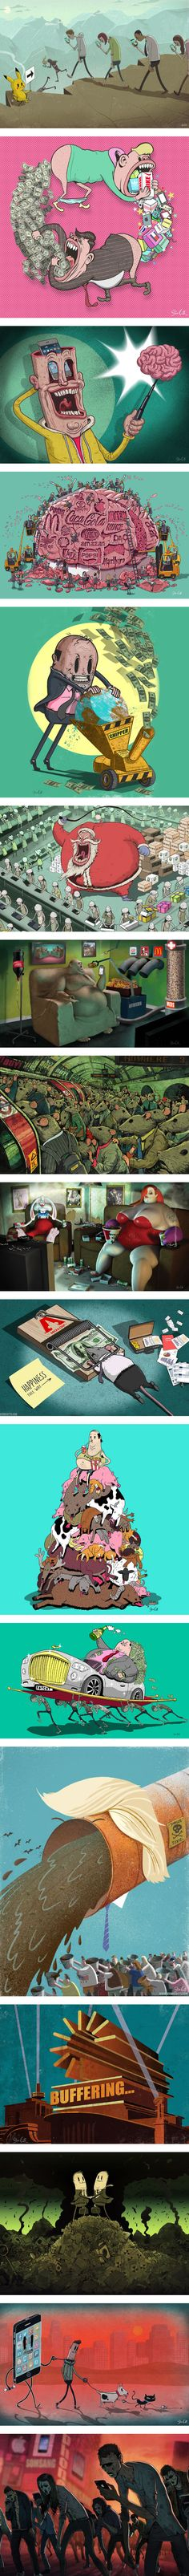 From artist, Steve Cutts, comes an array of images that depict the downfalls of overconsumption.  Cutts is an illustrator and animator…